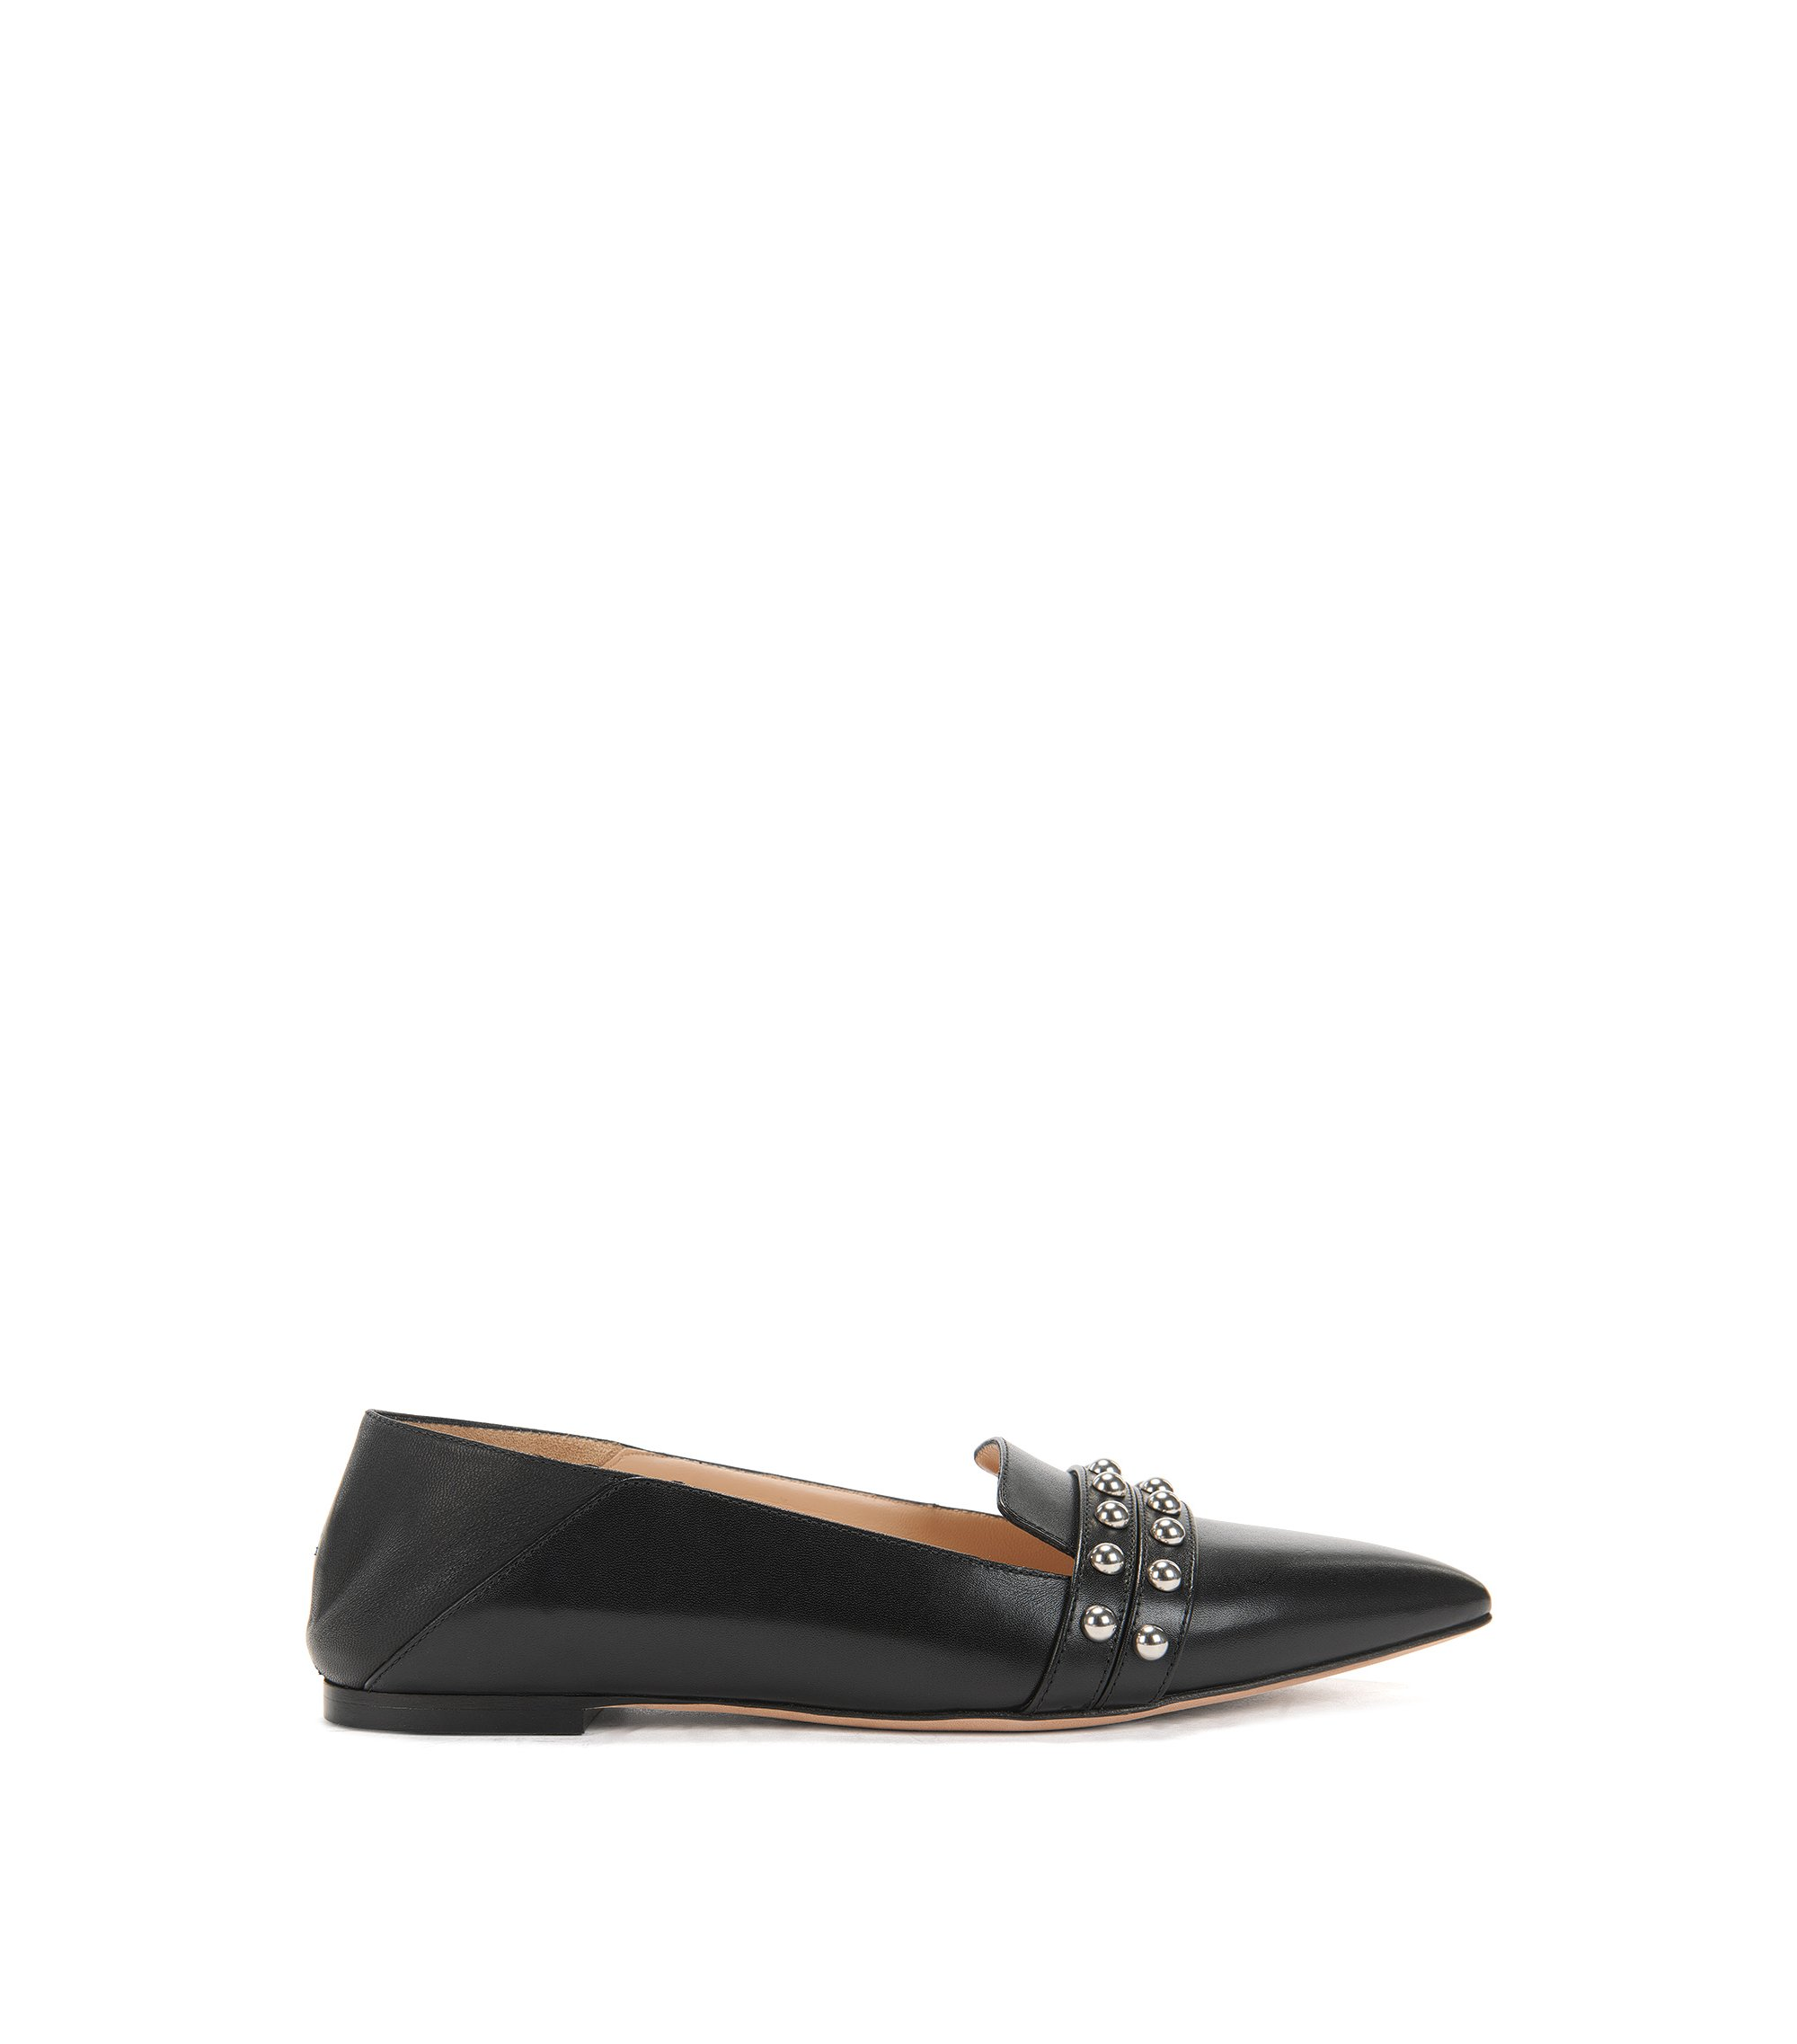 Studded Leather Ballerina Flat | Shortditch Ballerina, Black